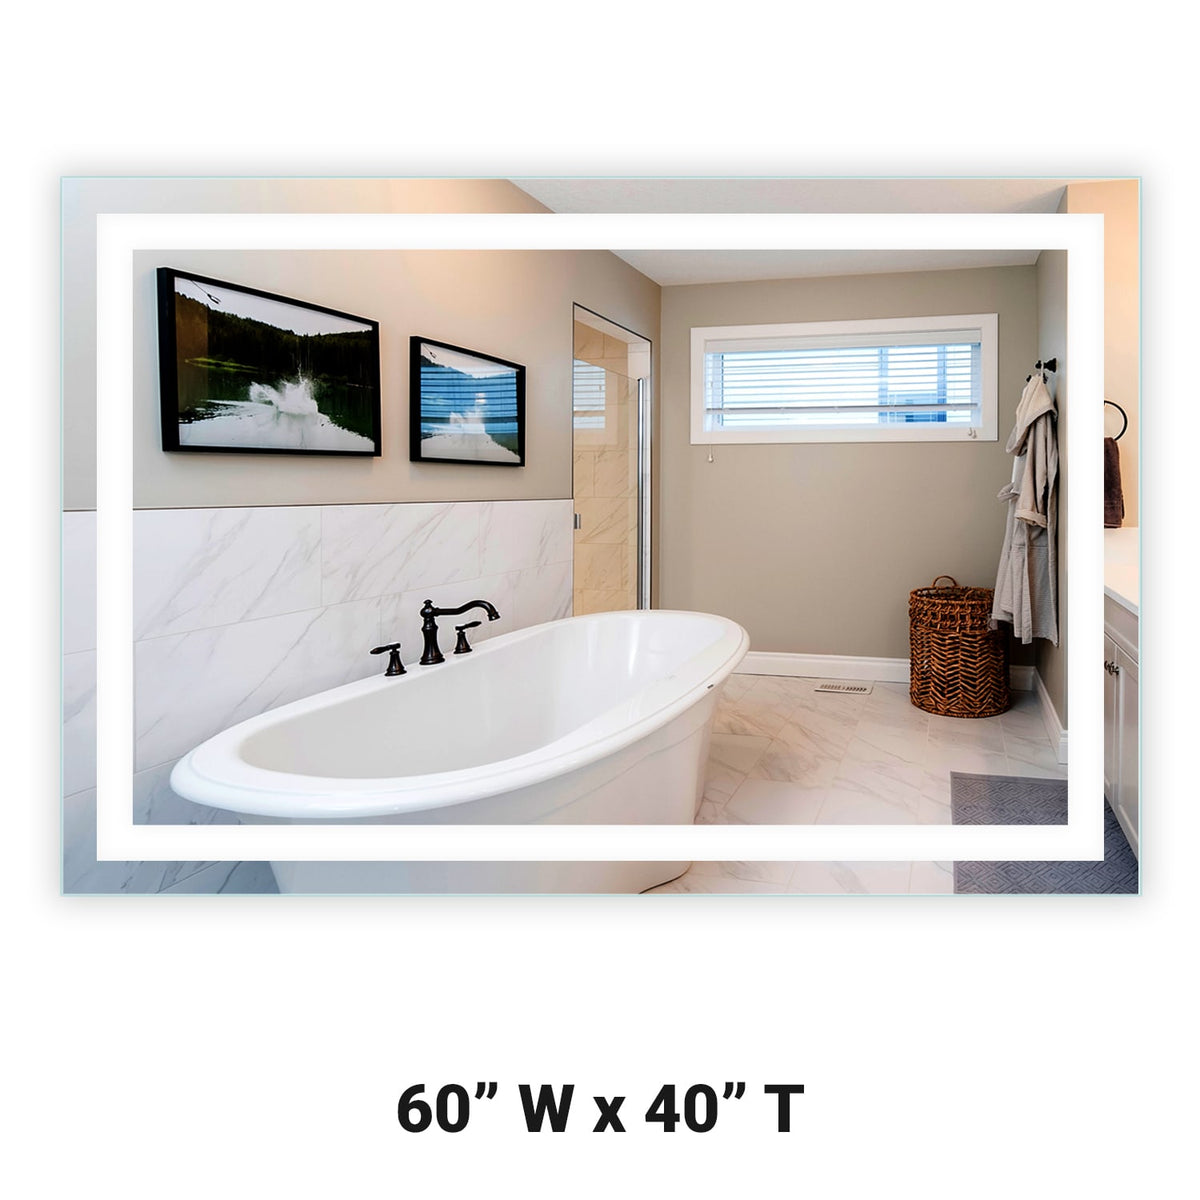 "Front-Lighted LED Bathroom Vanity Mirror: 60"" x 40 ..."